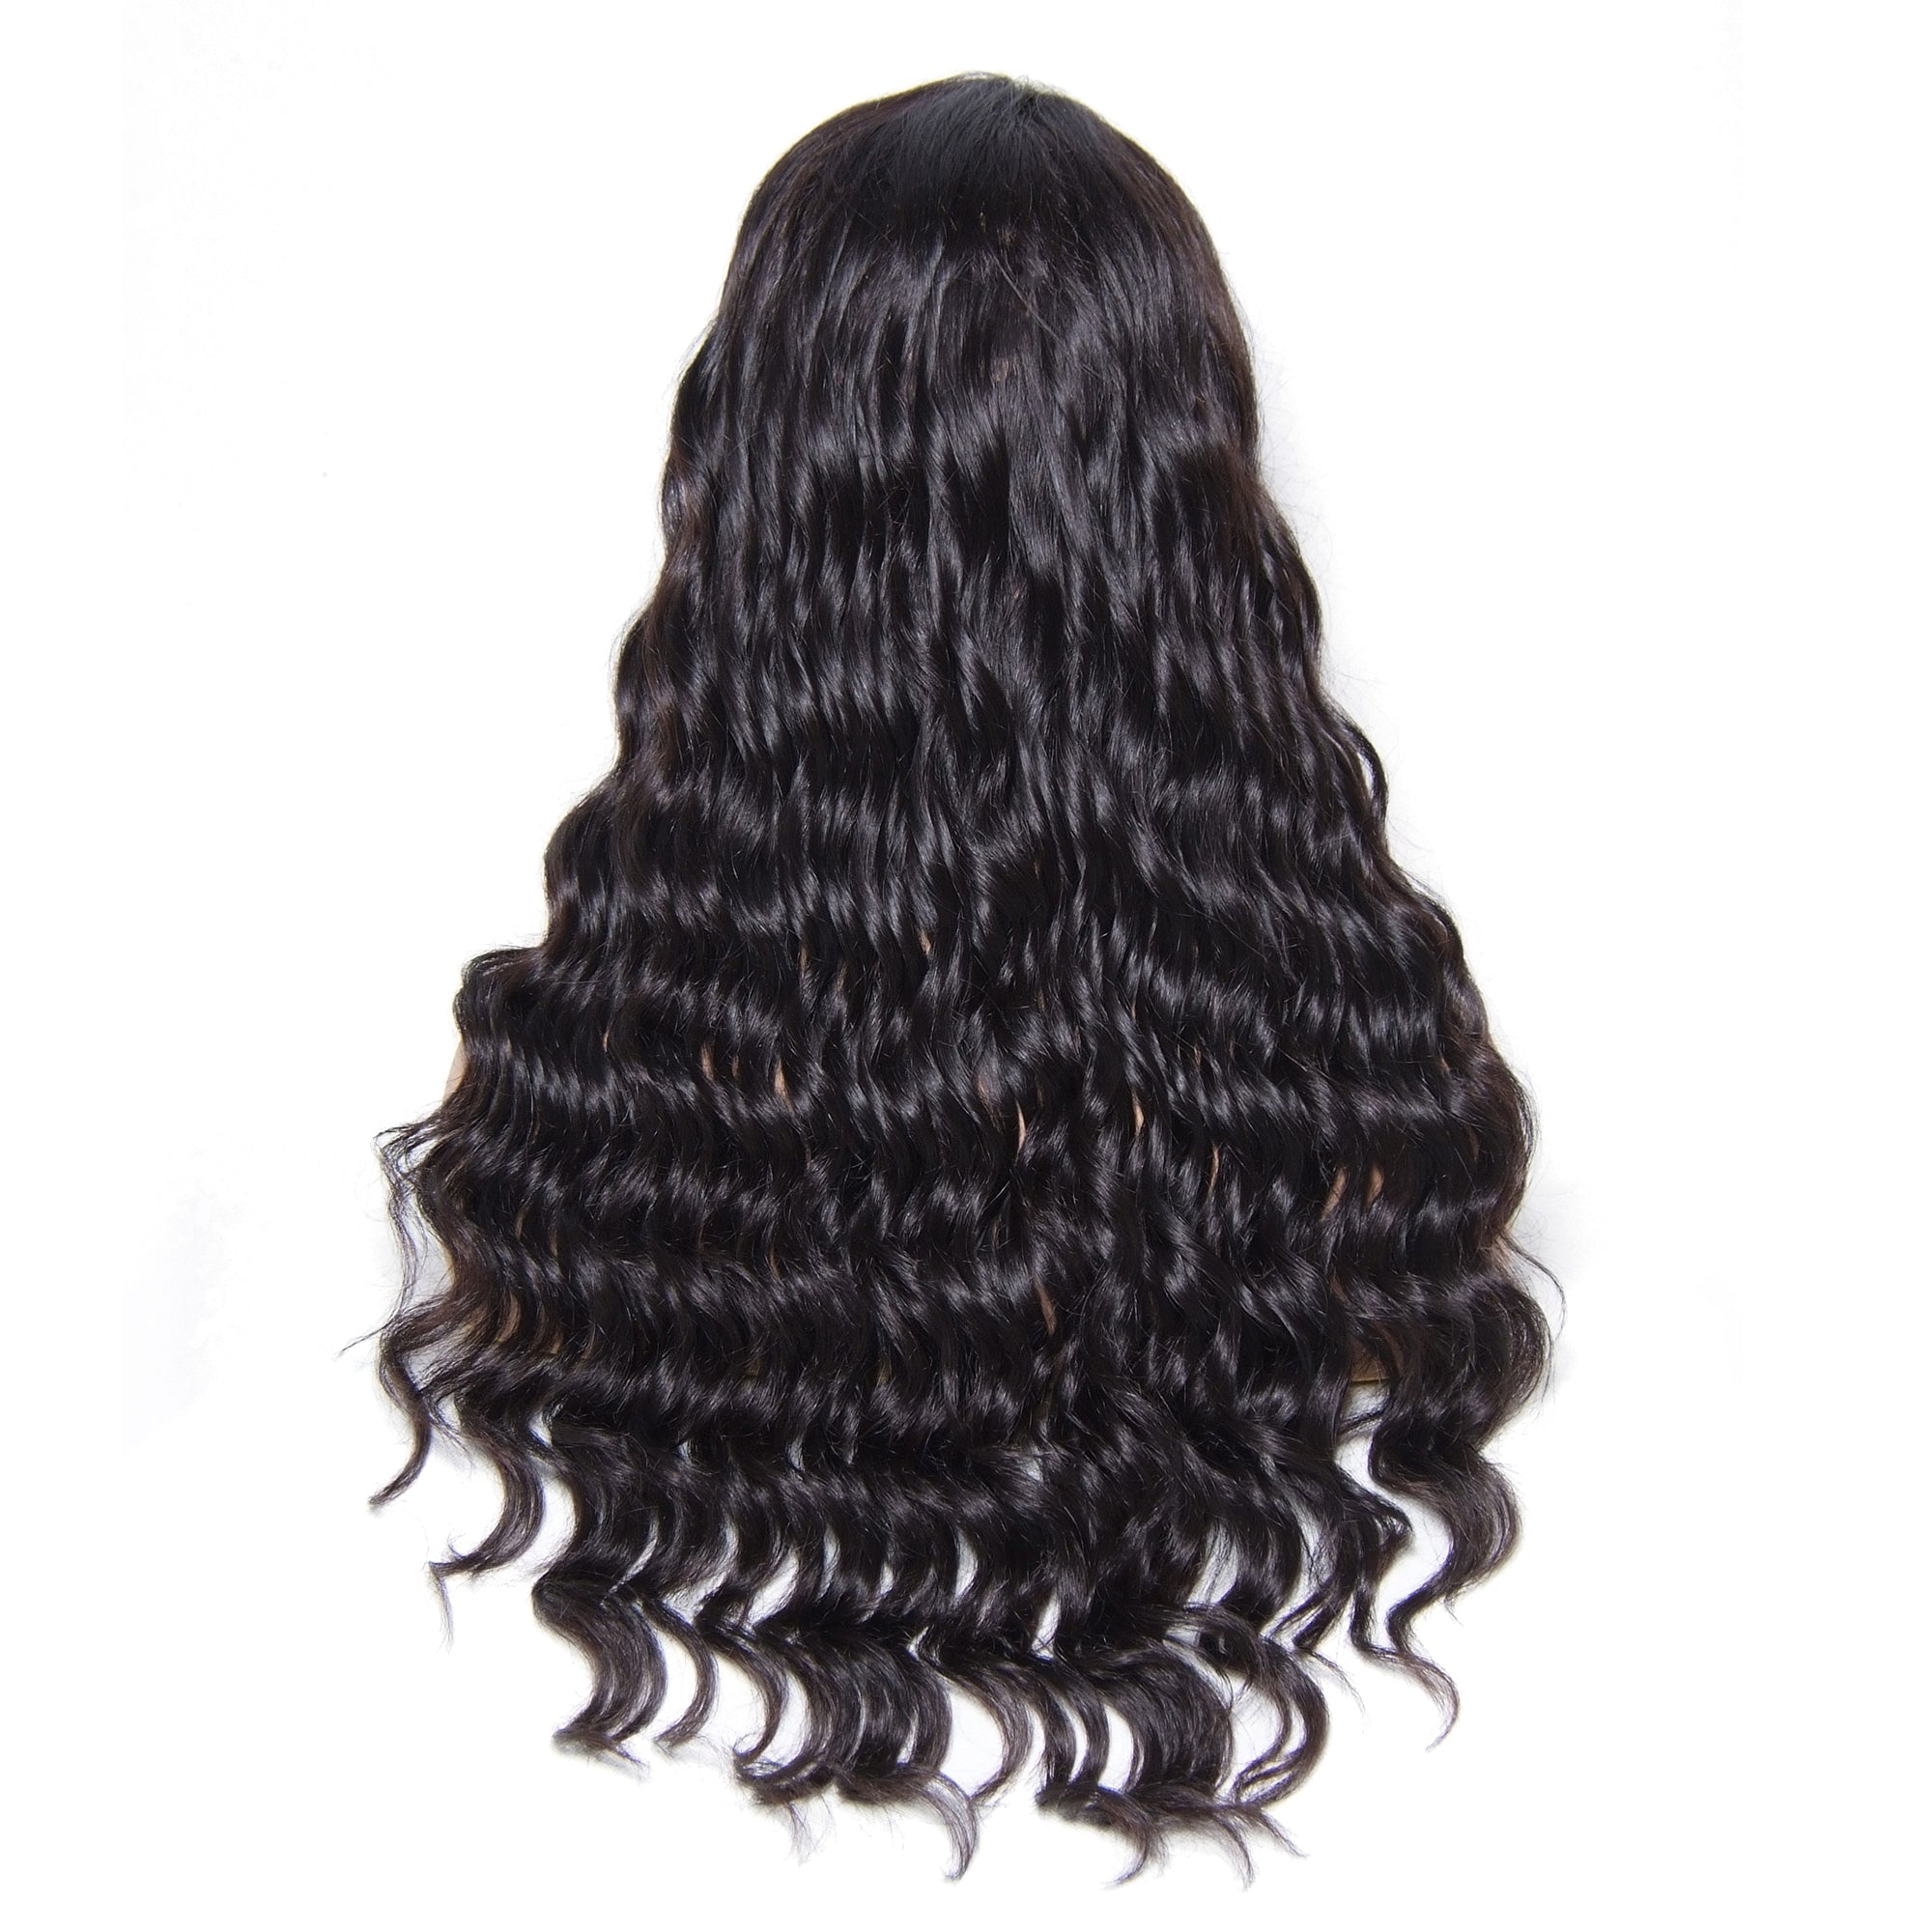 Spring New Wig Style Msbeauty Lace Front Loose Wave Lace Front Wig - MSBEAUTY HAIR